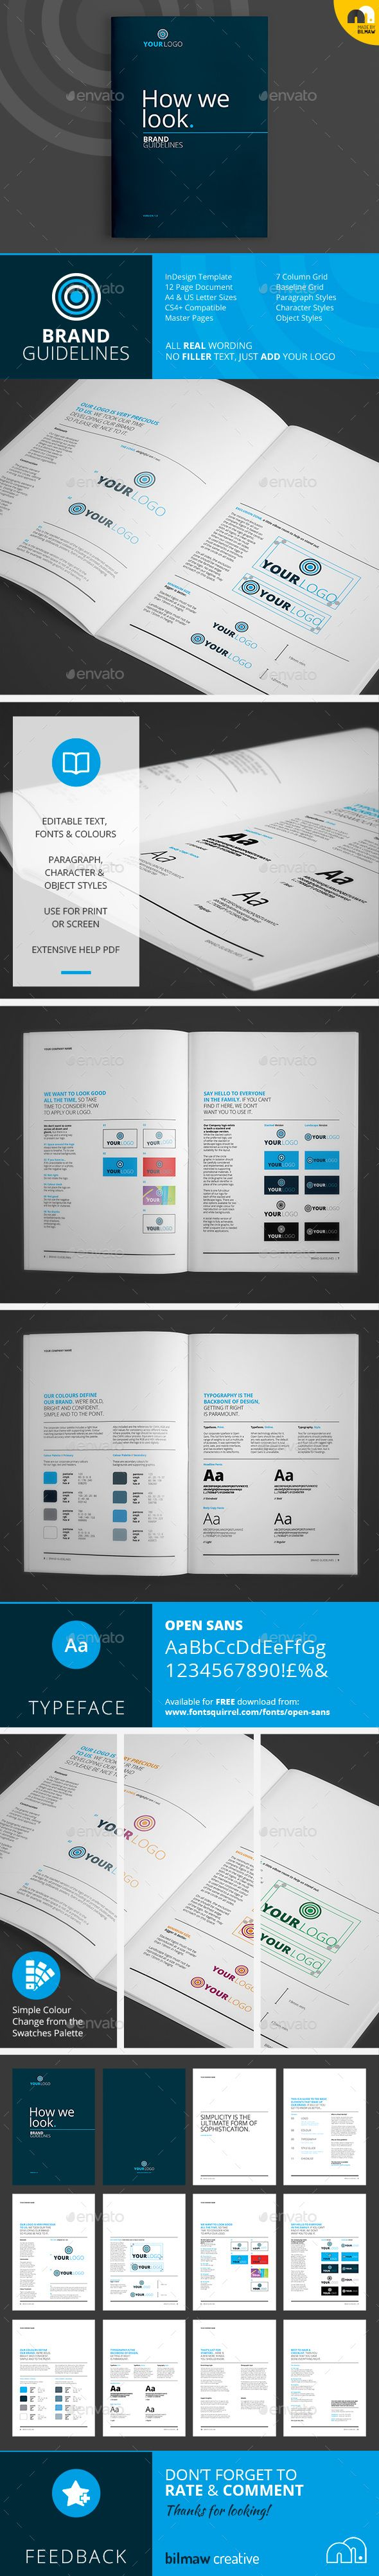 How We Look - Brand Guidelines - Corporate Brochures - Template - 12 page brand/logo guidelines booklet, complete with wording and no filler text. 'How We Look' has a modern twist to the text usually included in boring branding documents and is perfect for those looking something a little different.